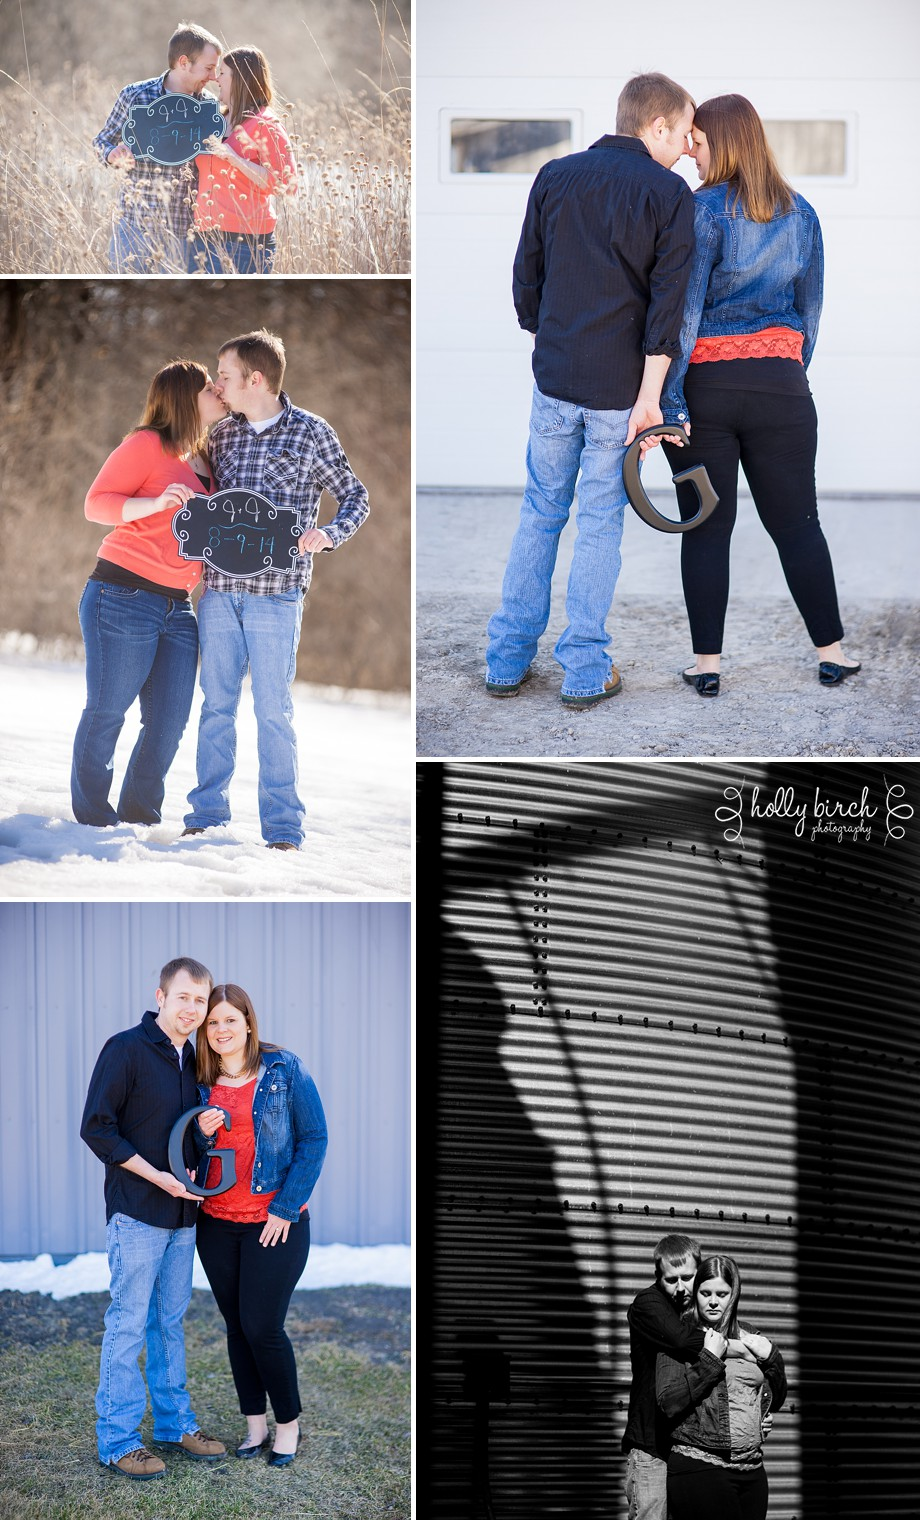 Iroquois-county-Gilman-IL-engagement-photographer_0326